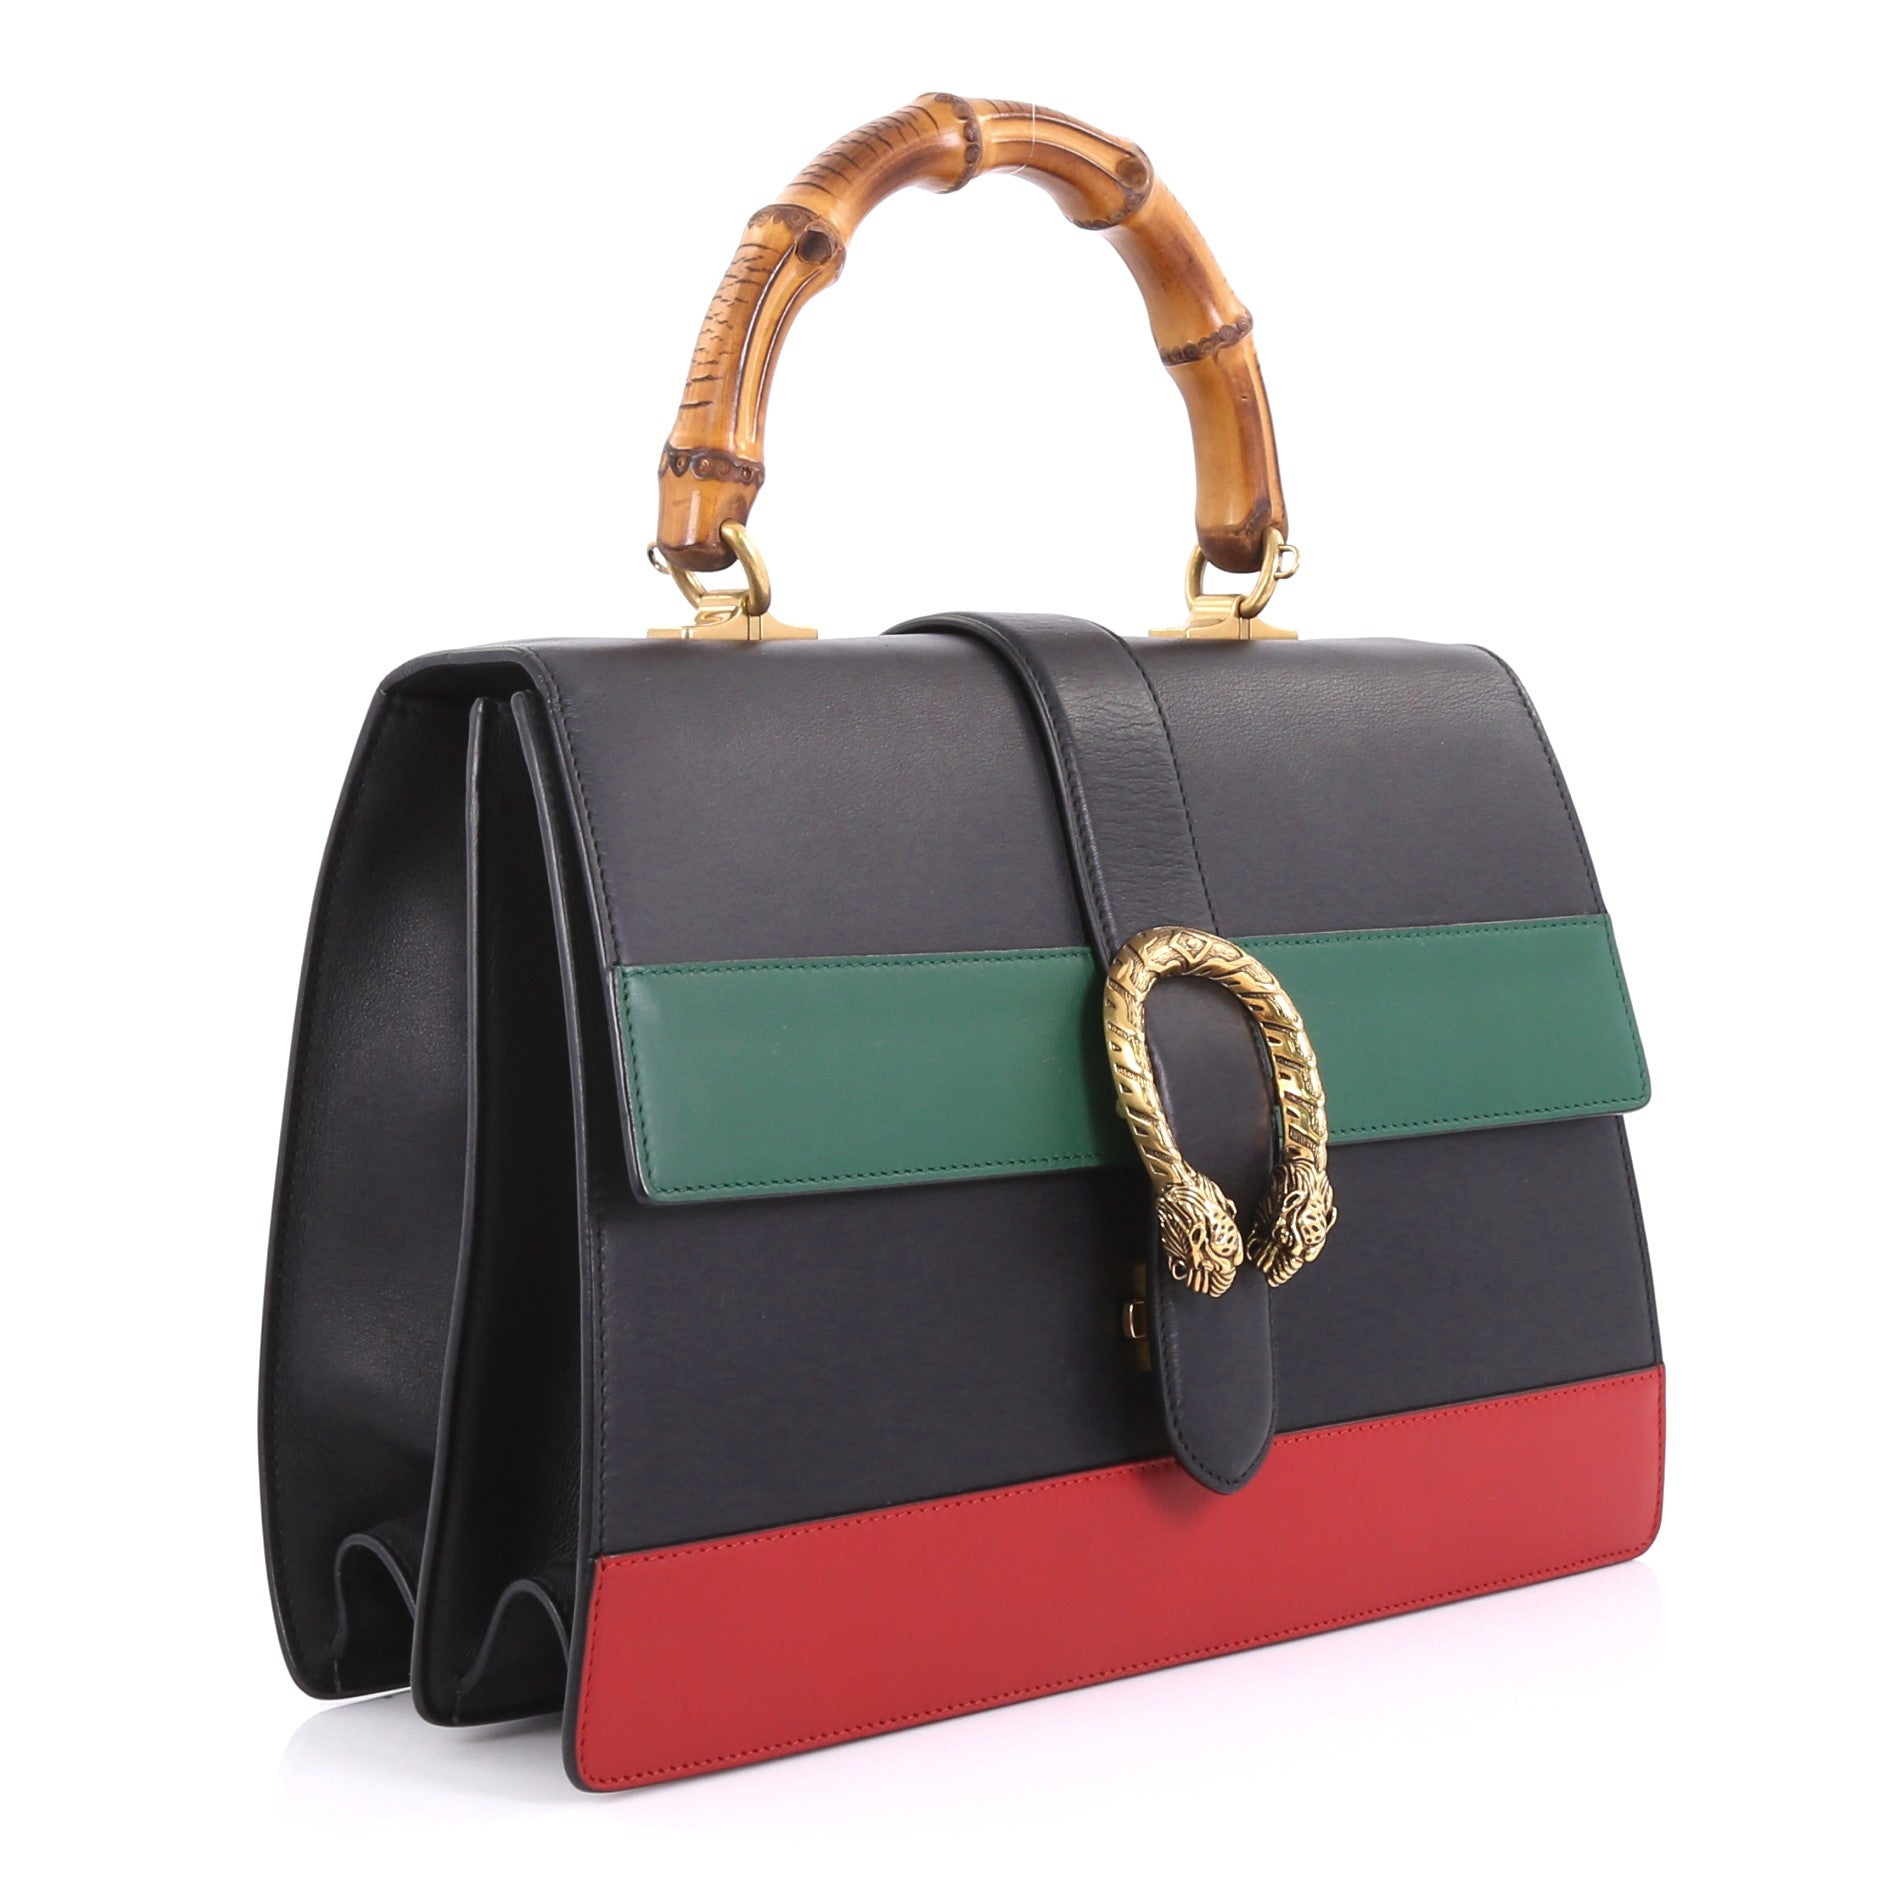 7690ca0860fb Gucci Dionysus Bamboo Top Handle Bag Colorblock Leather Large at 1stdibs